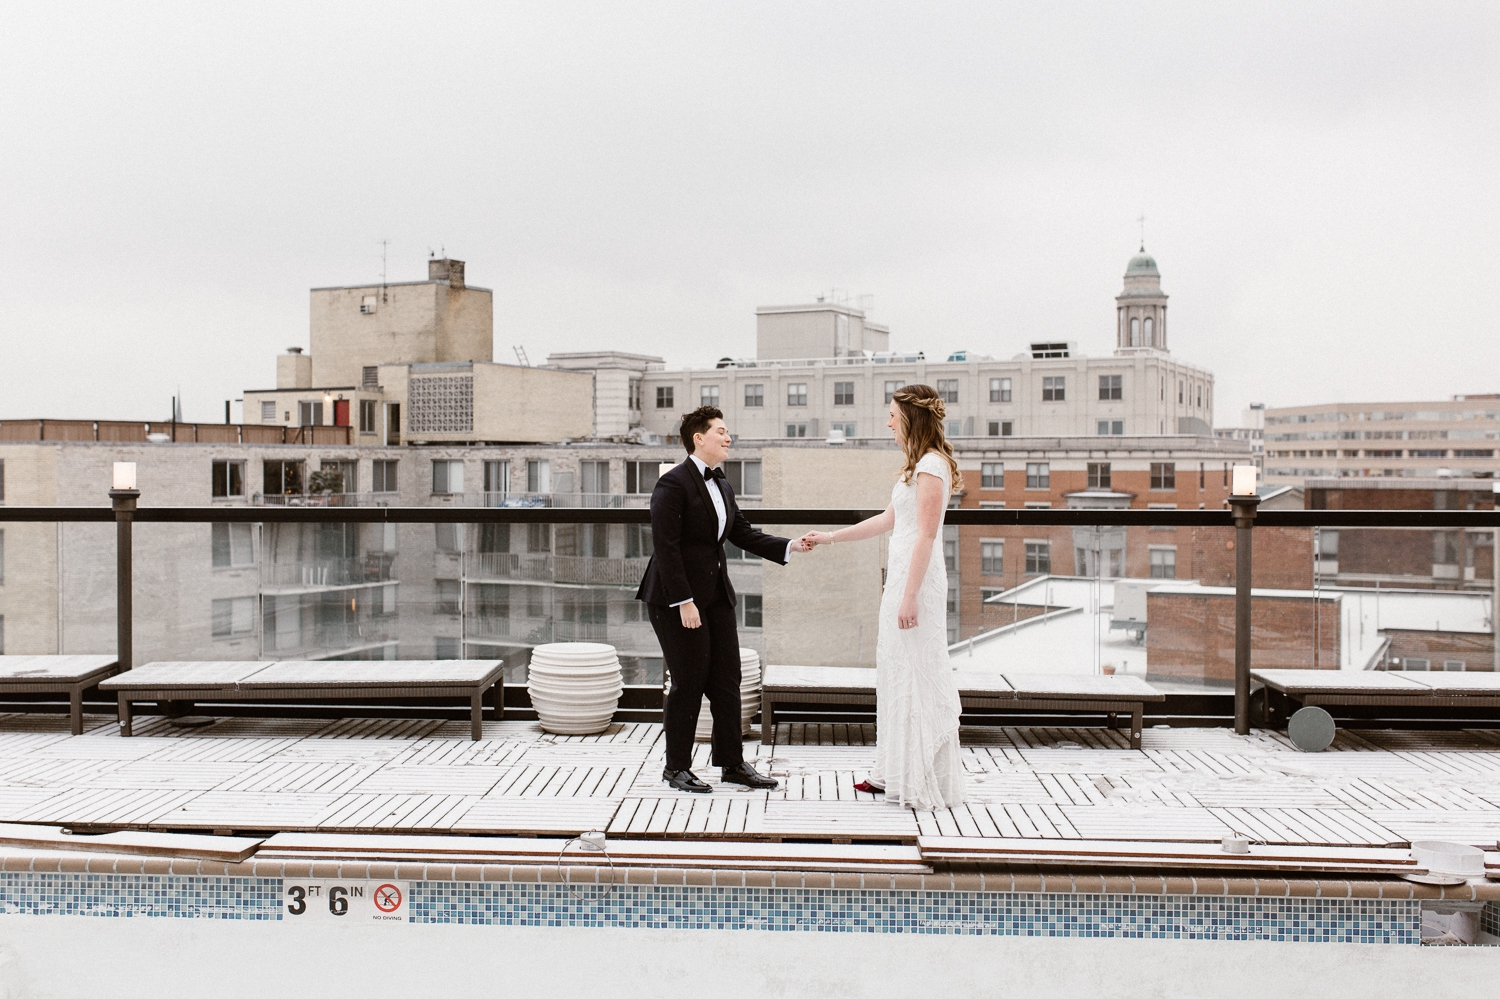 mason-and-rook-first-look-rooftop-josephine-butler-parks-wedding-photographer 46.jpg